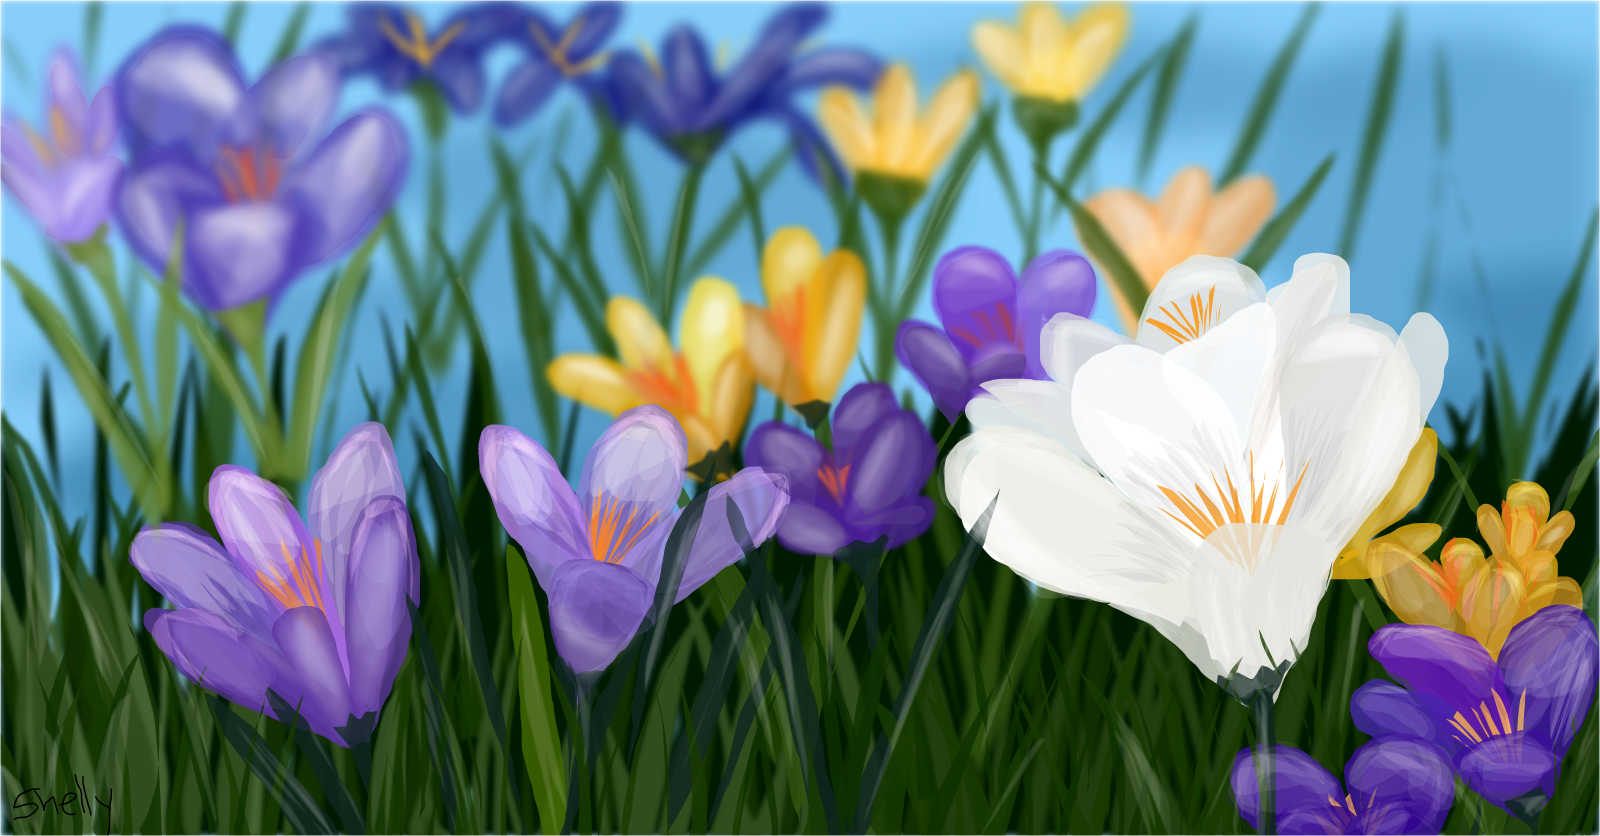 First Flower Of Spring Drawings Sketchport